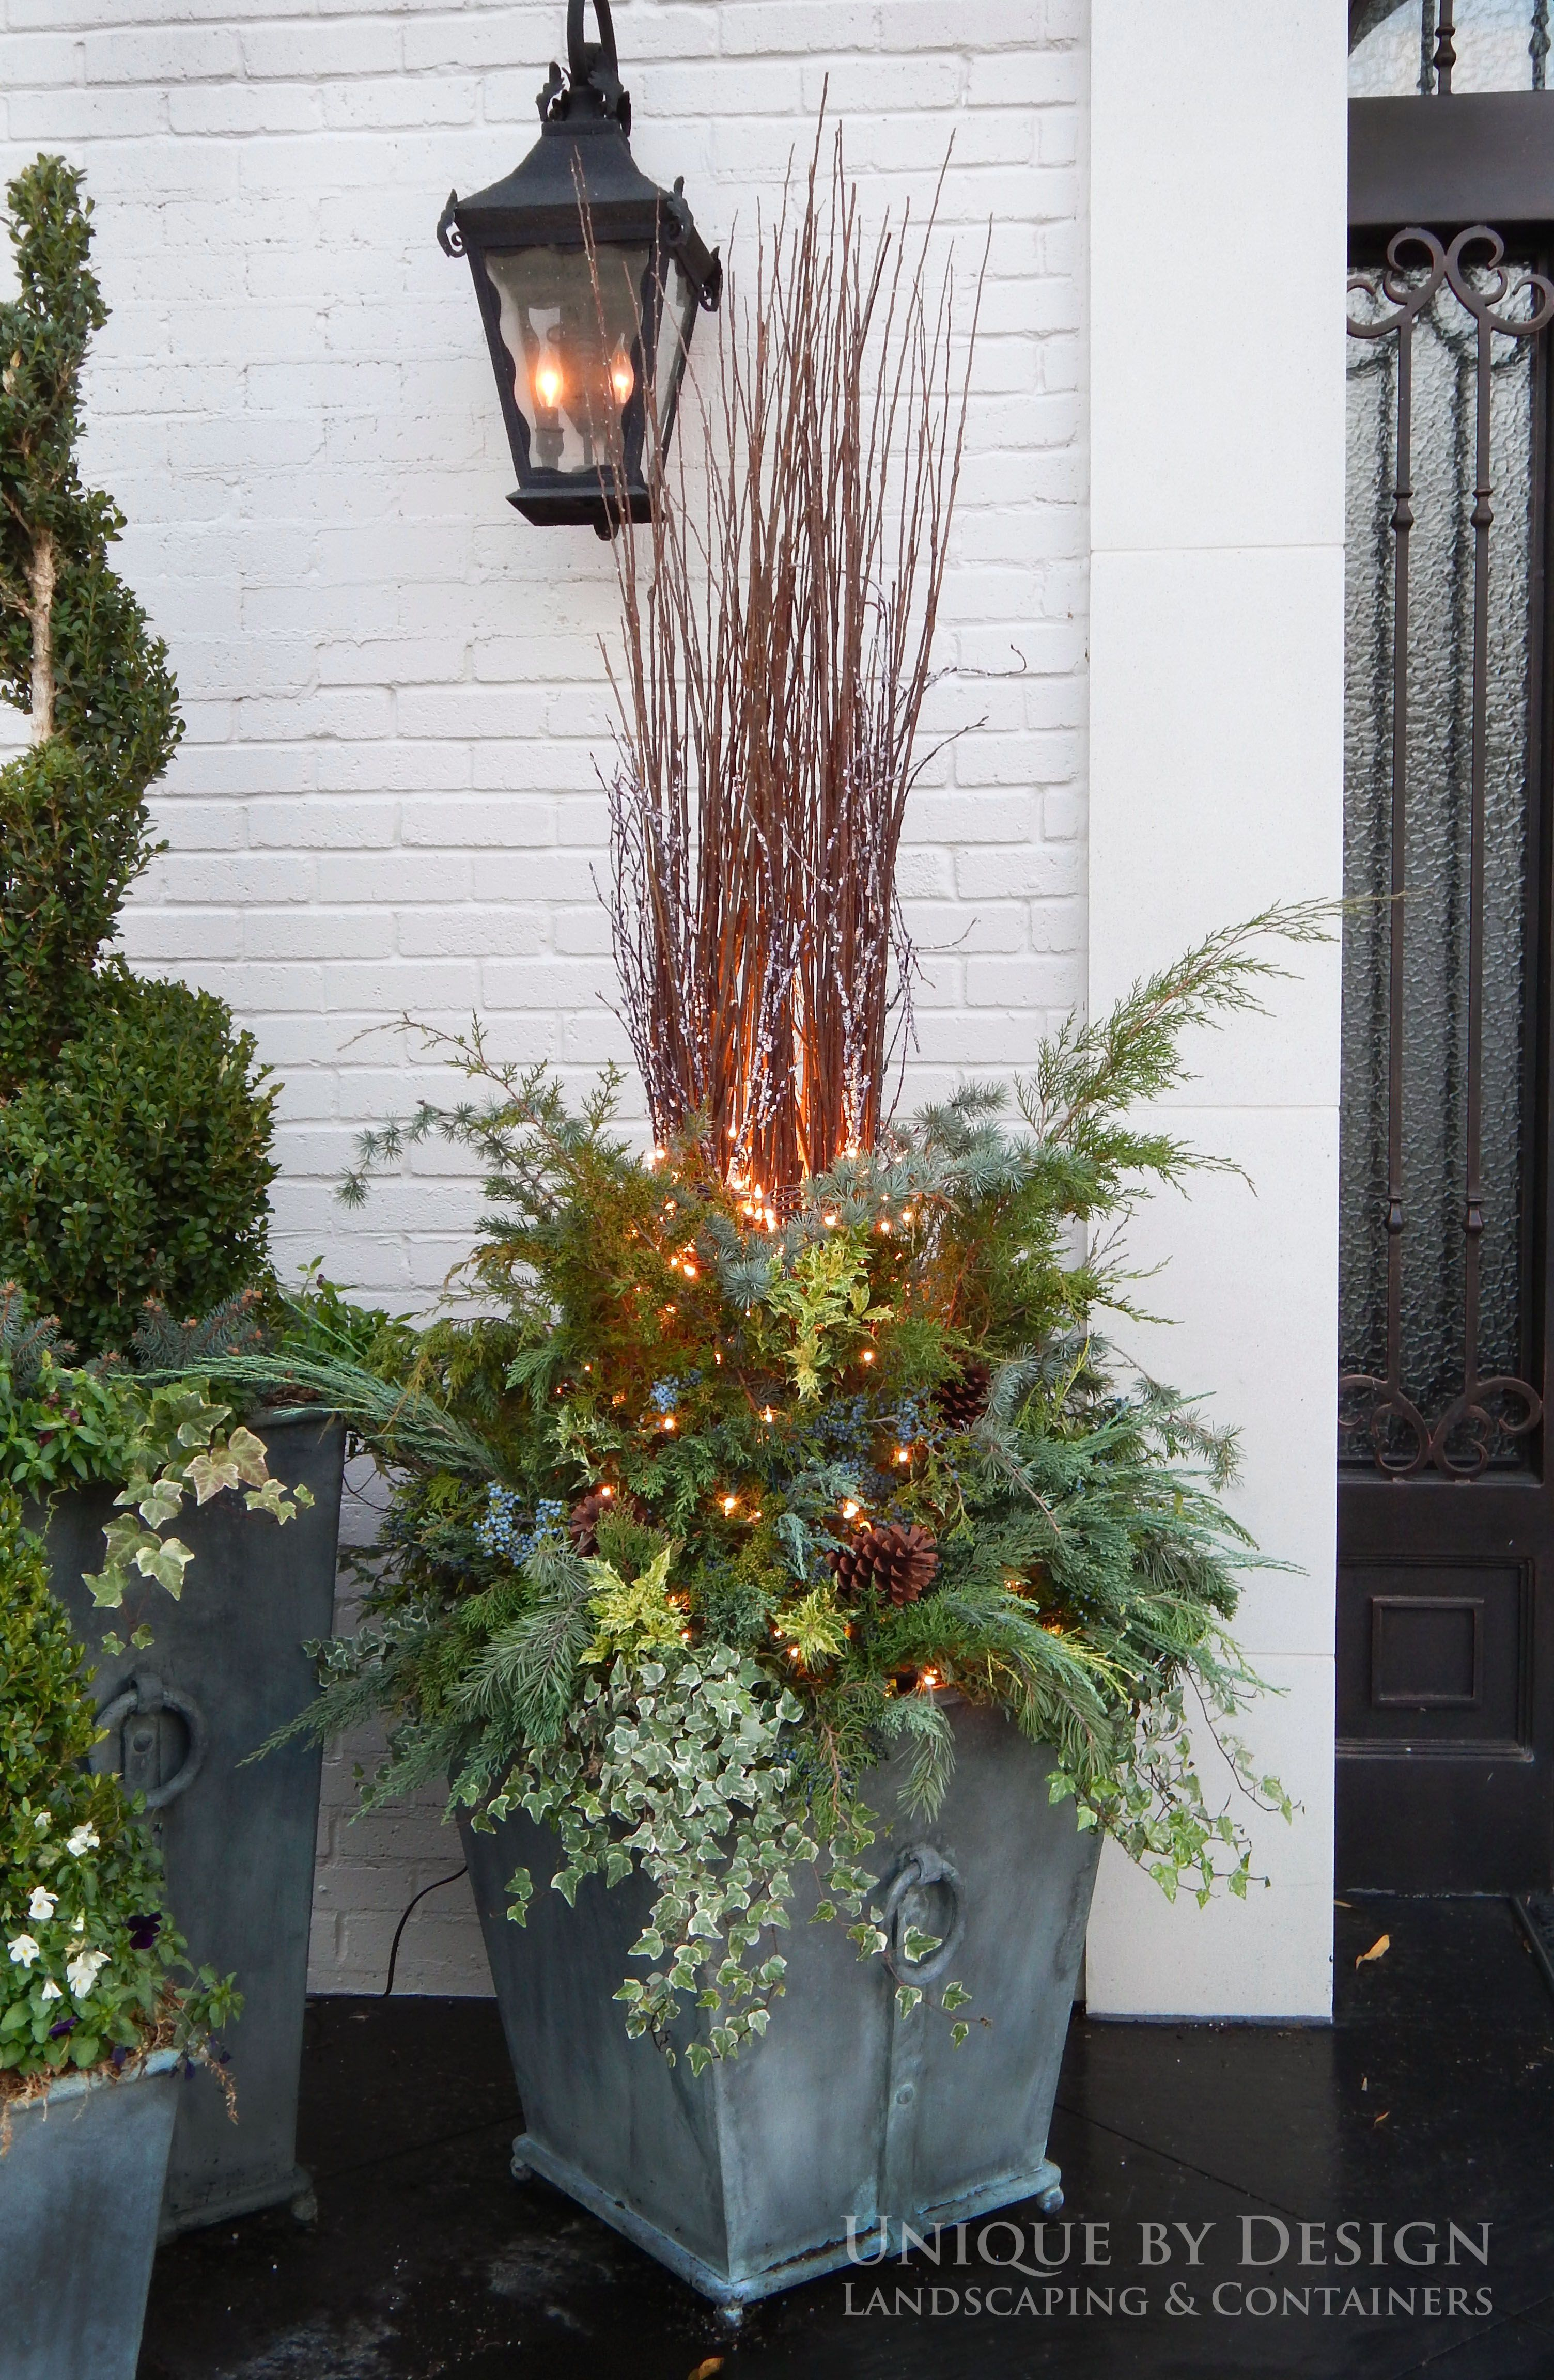 How to grow greenery in winter